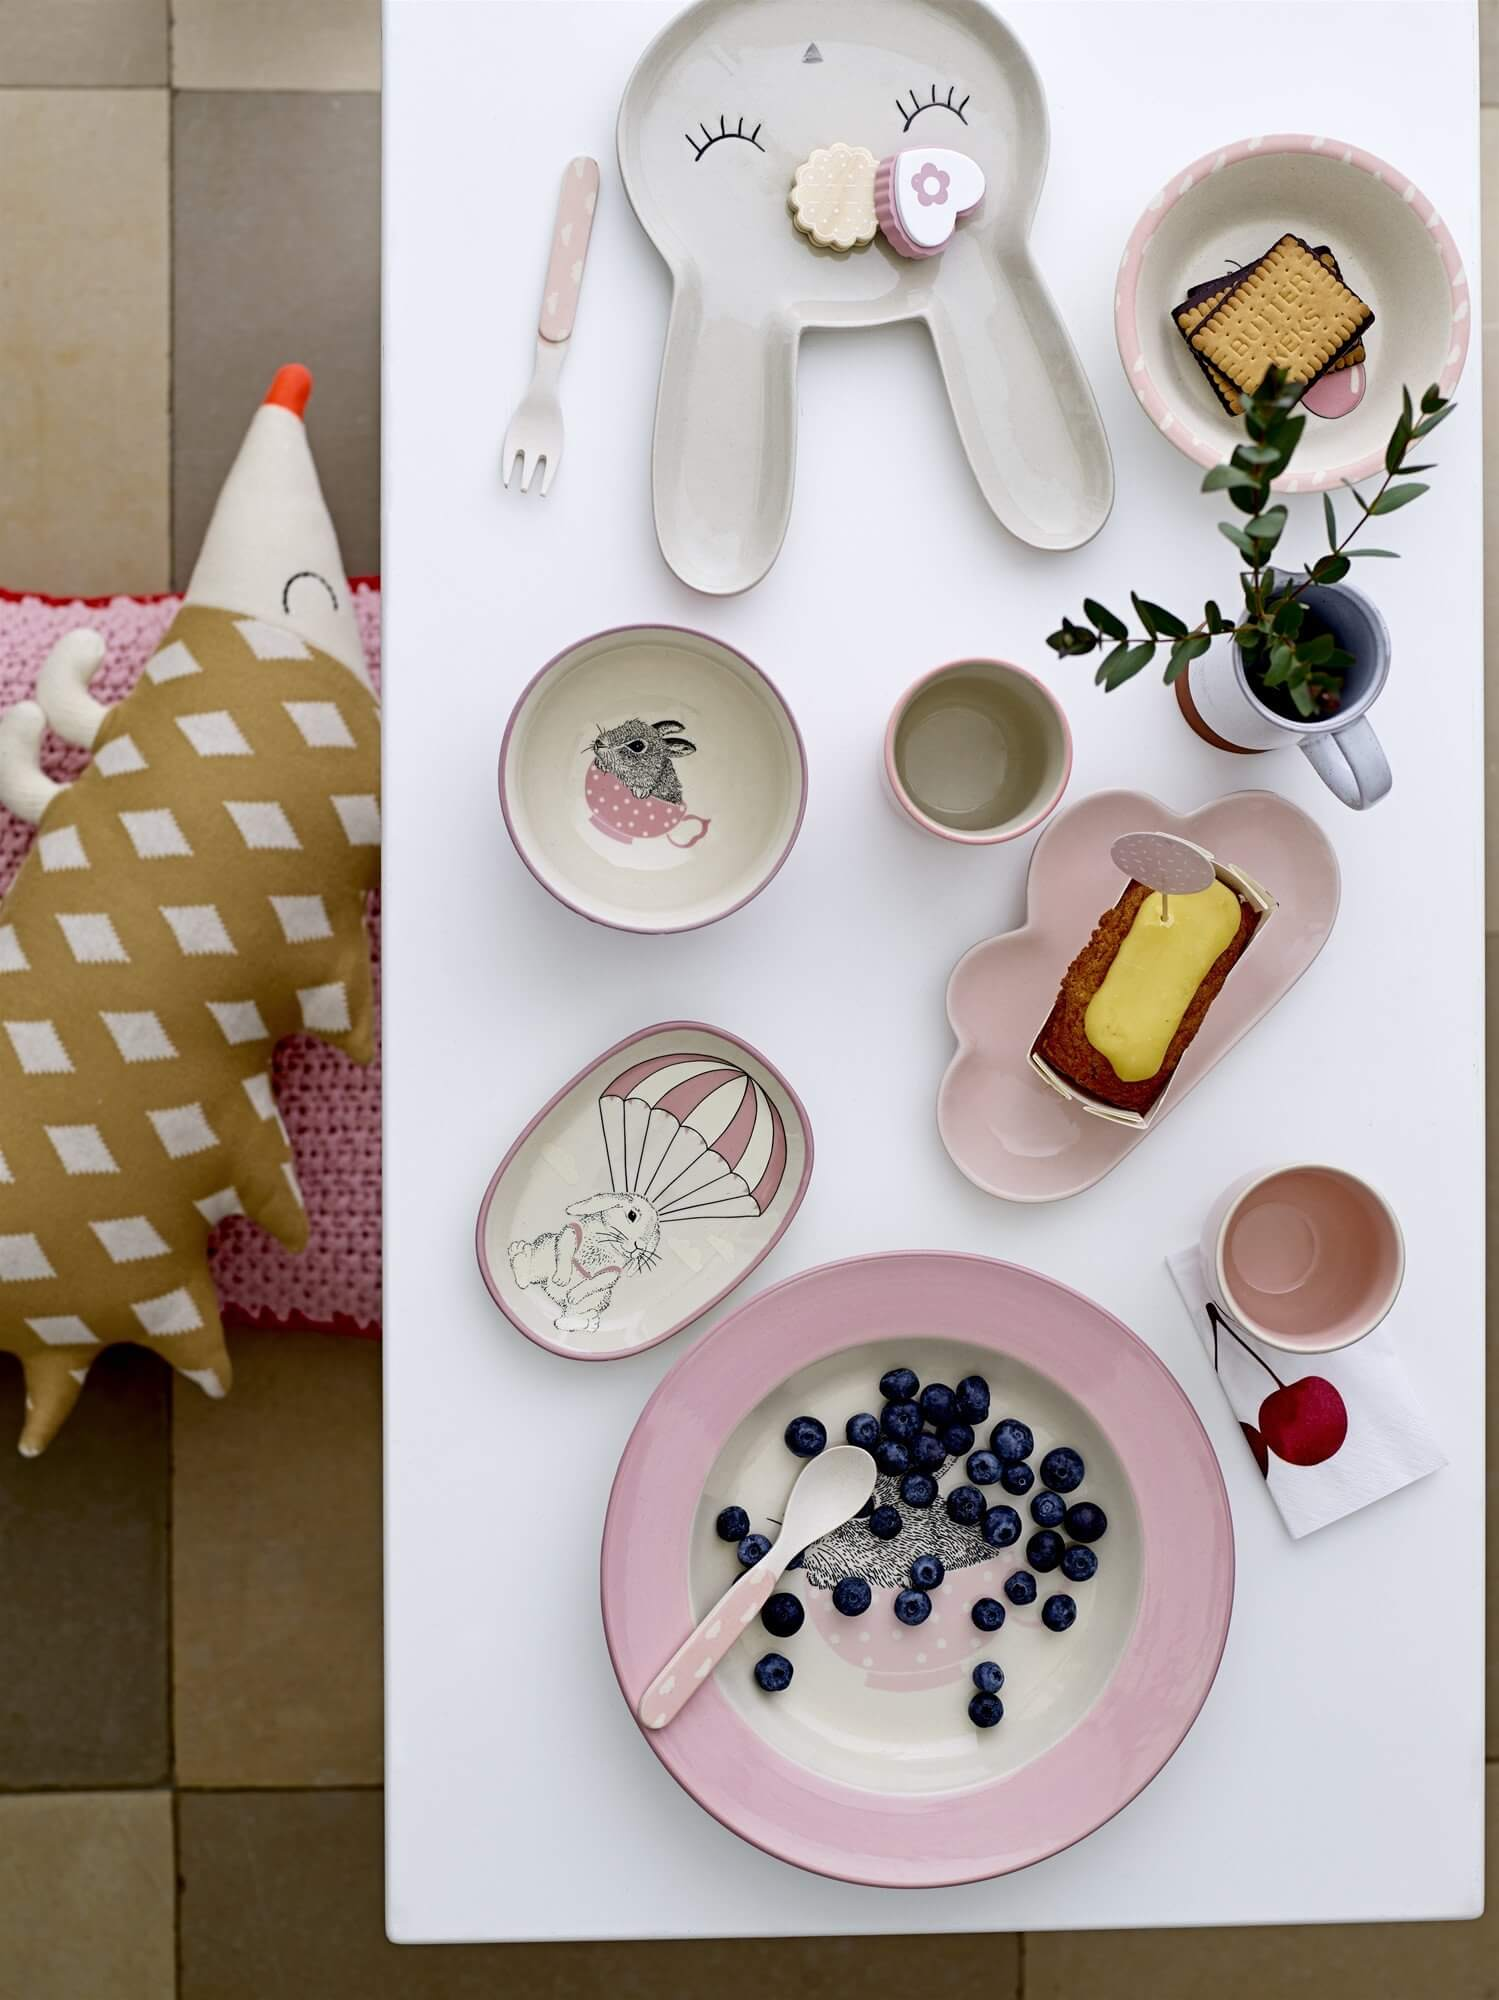 Natural home decor and accessories for children